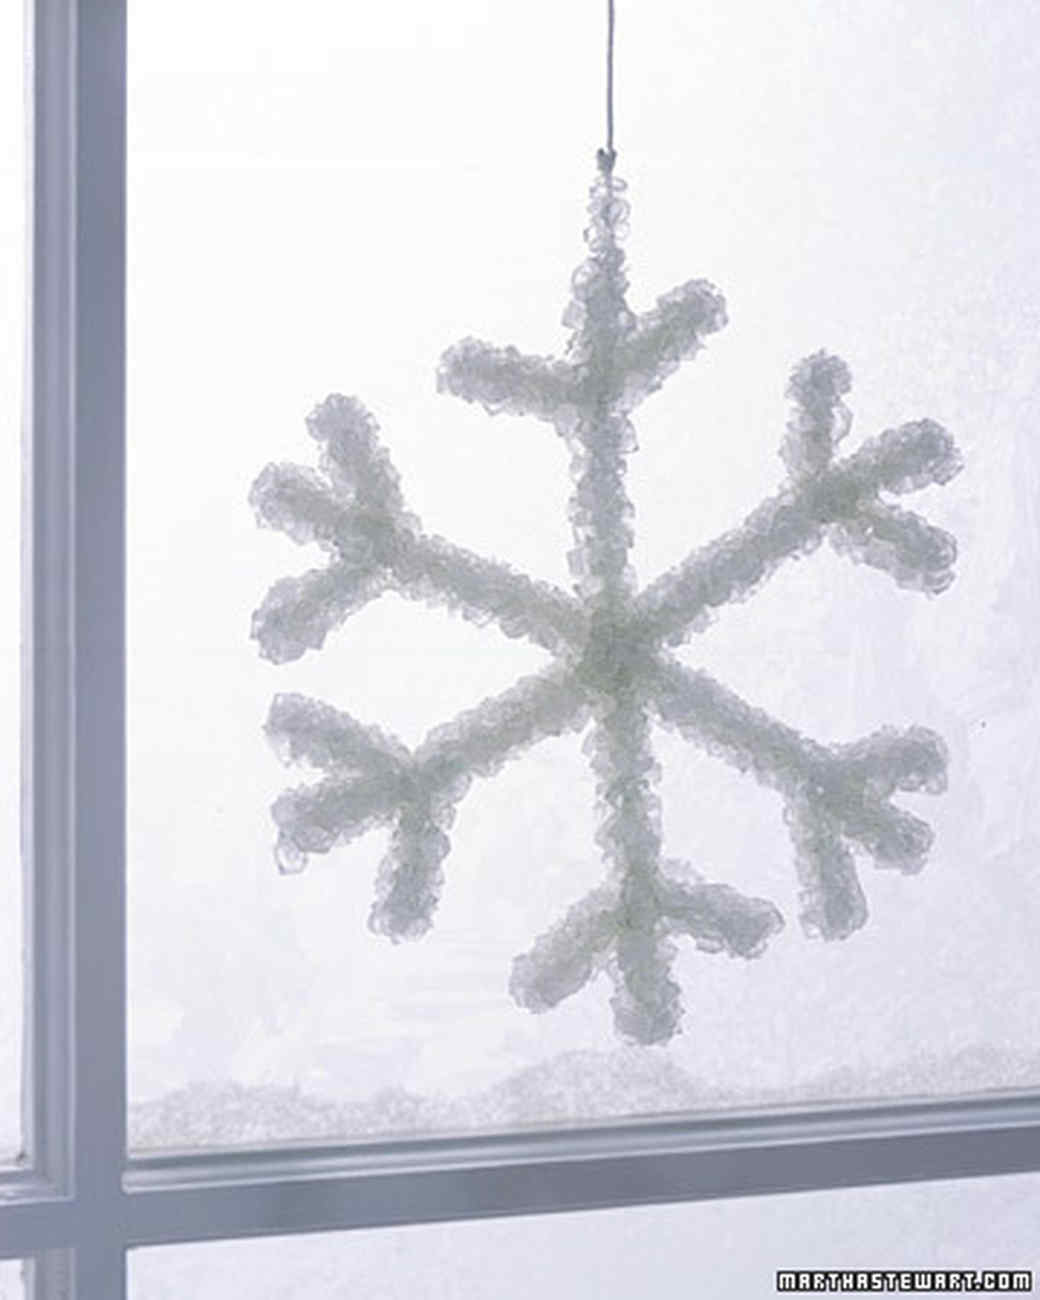 Snowflake template 7+ free pdf download.